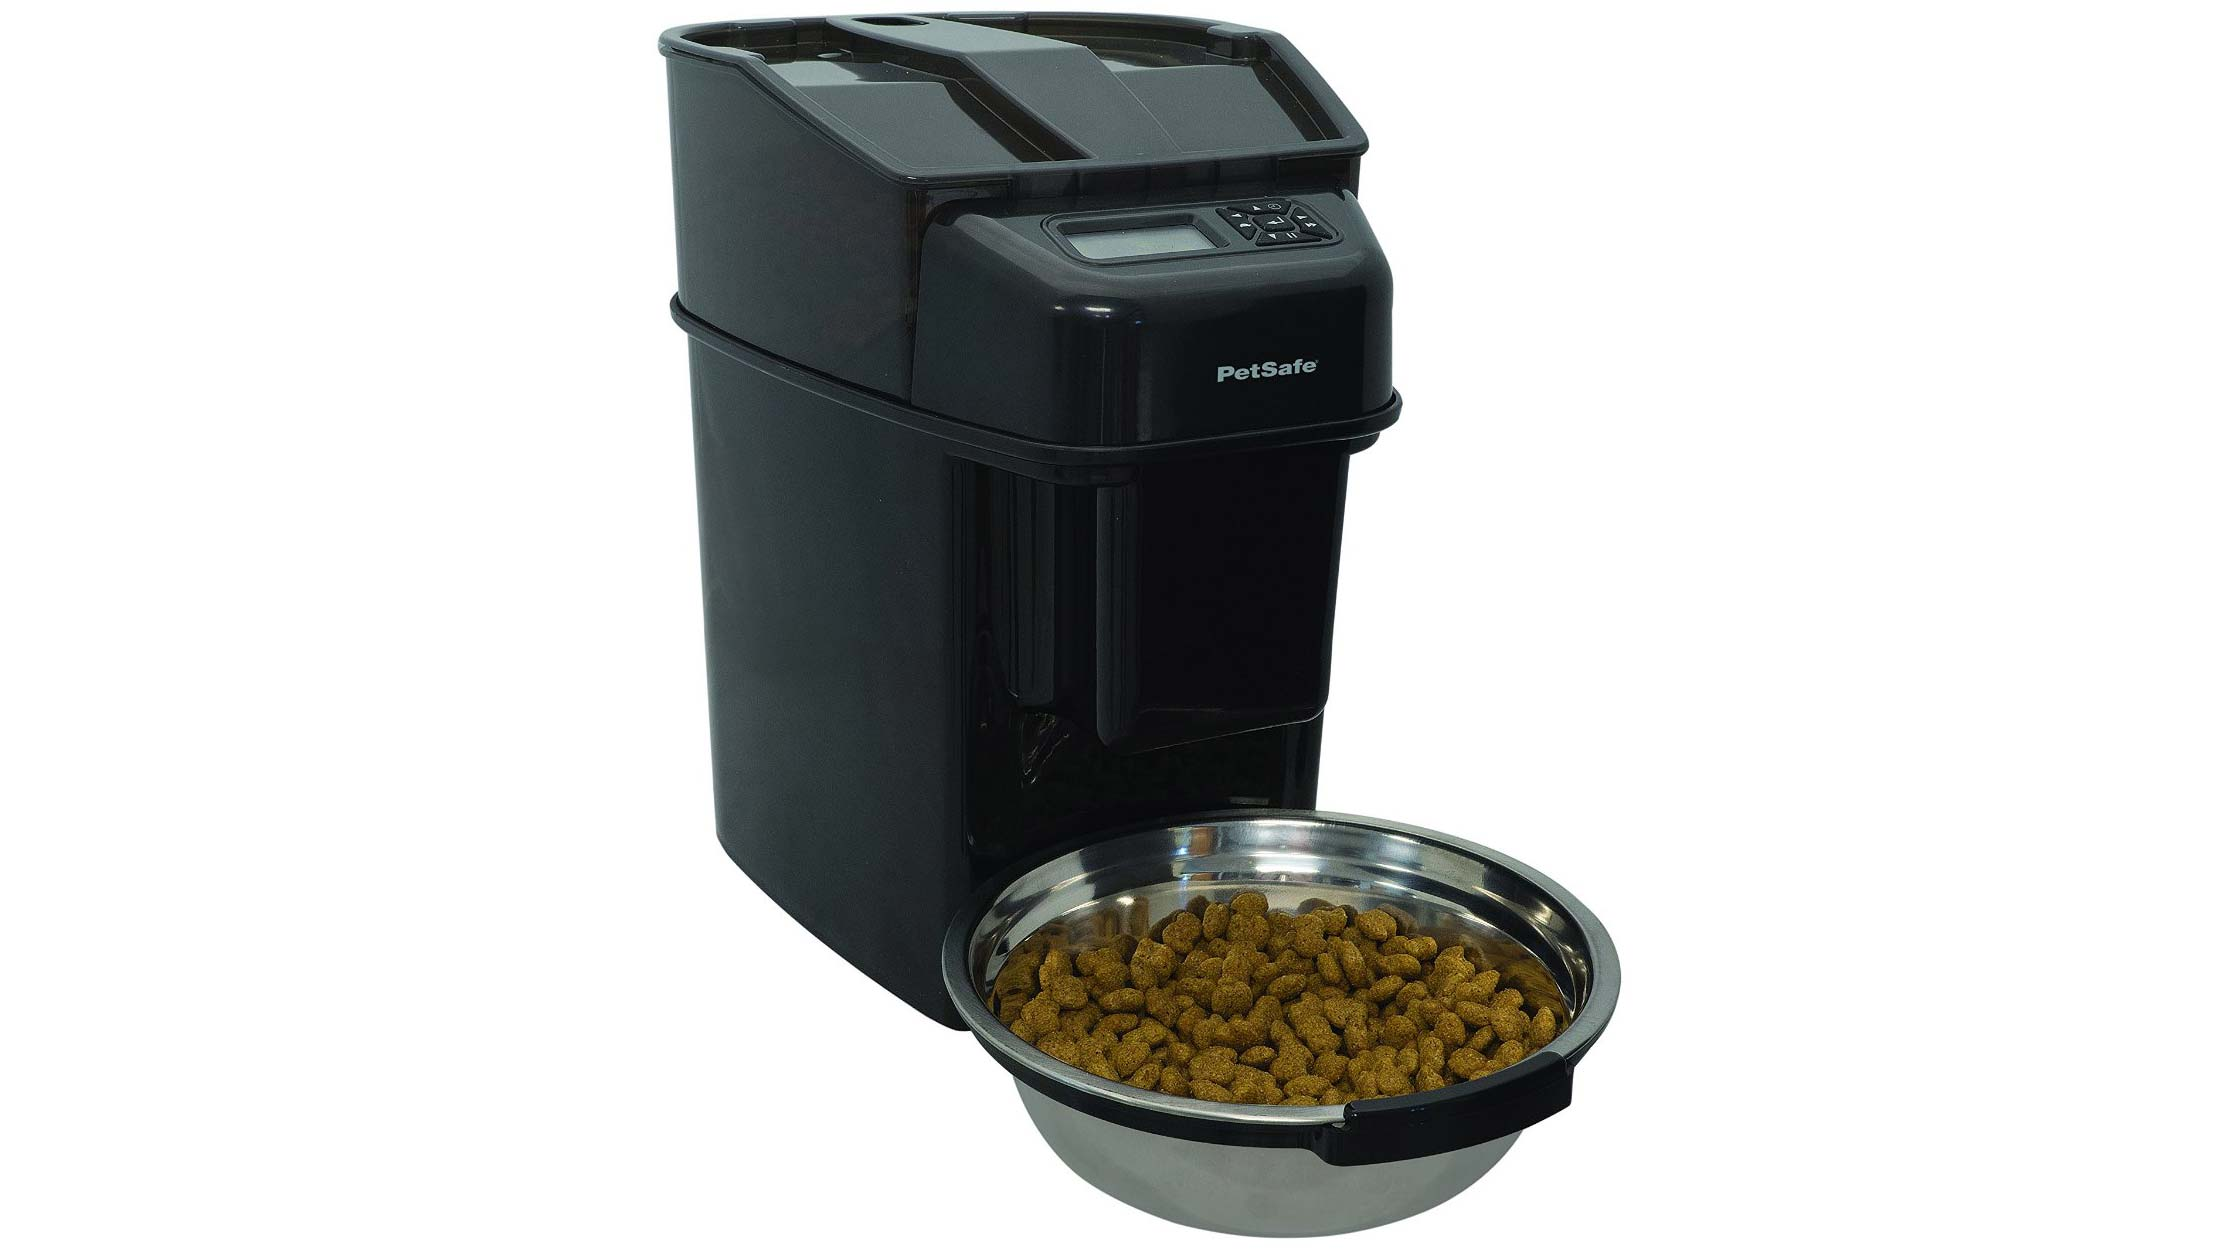 PetSafe Healthy Pet Simply Feed Automatic Cat Feeder